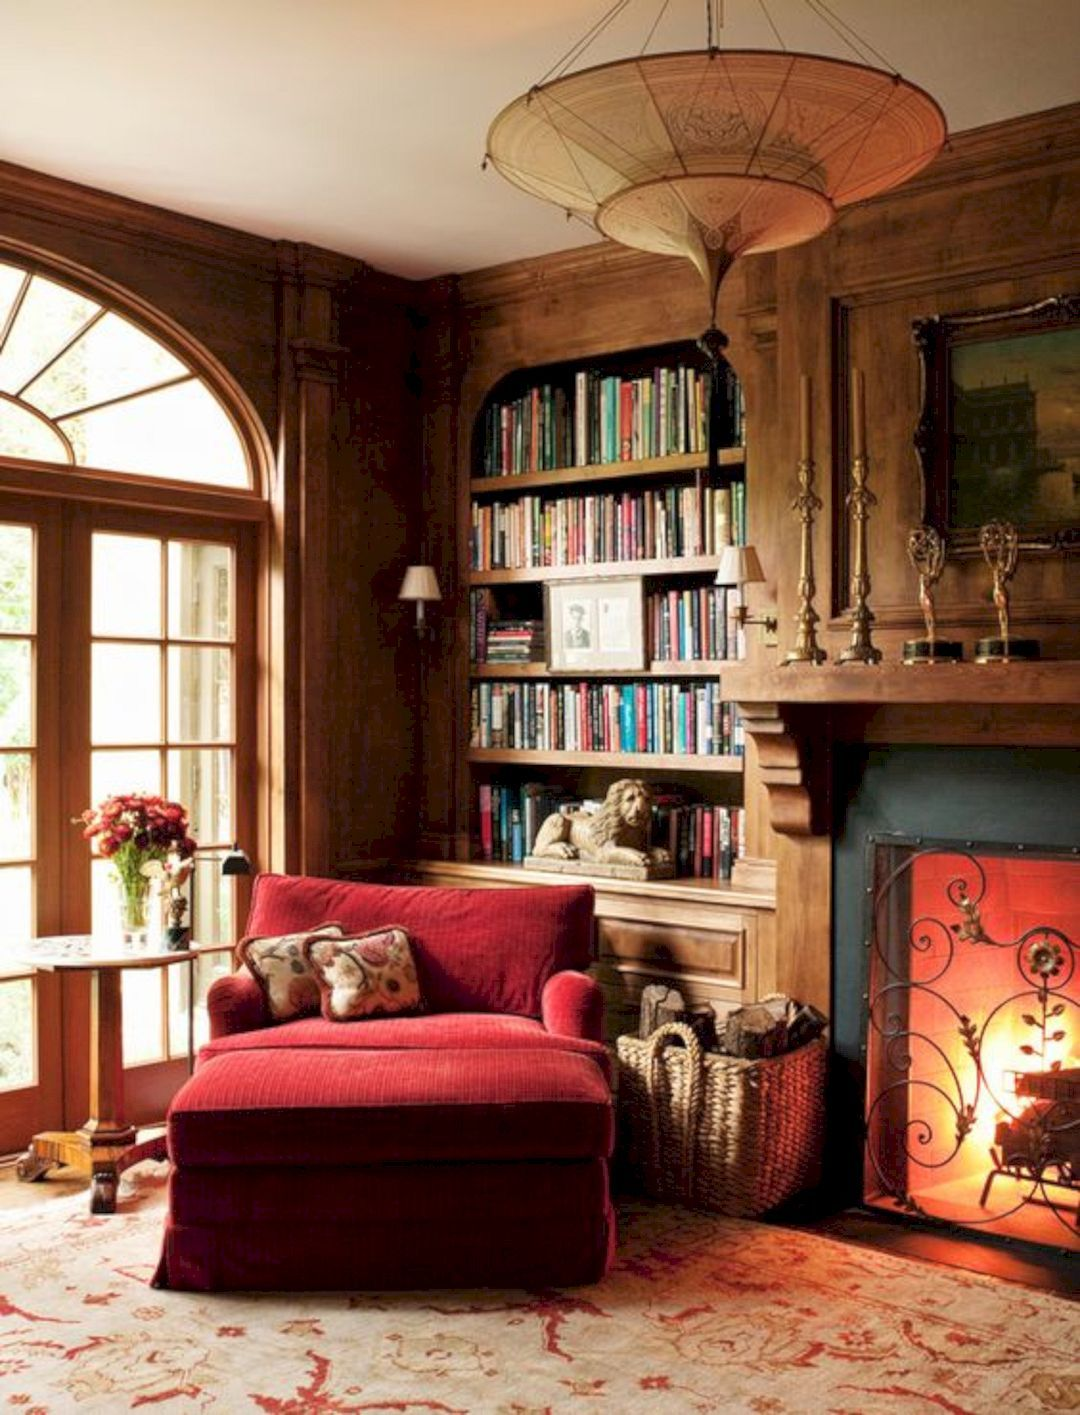 Traditional Home Library Design Ideas: 17 Traditional Home Decoration Ideas (With Images)